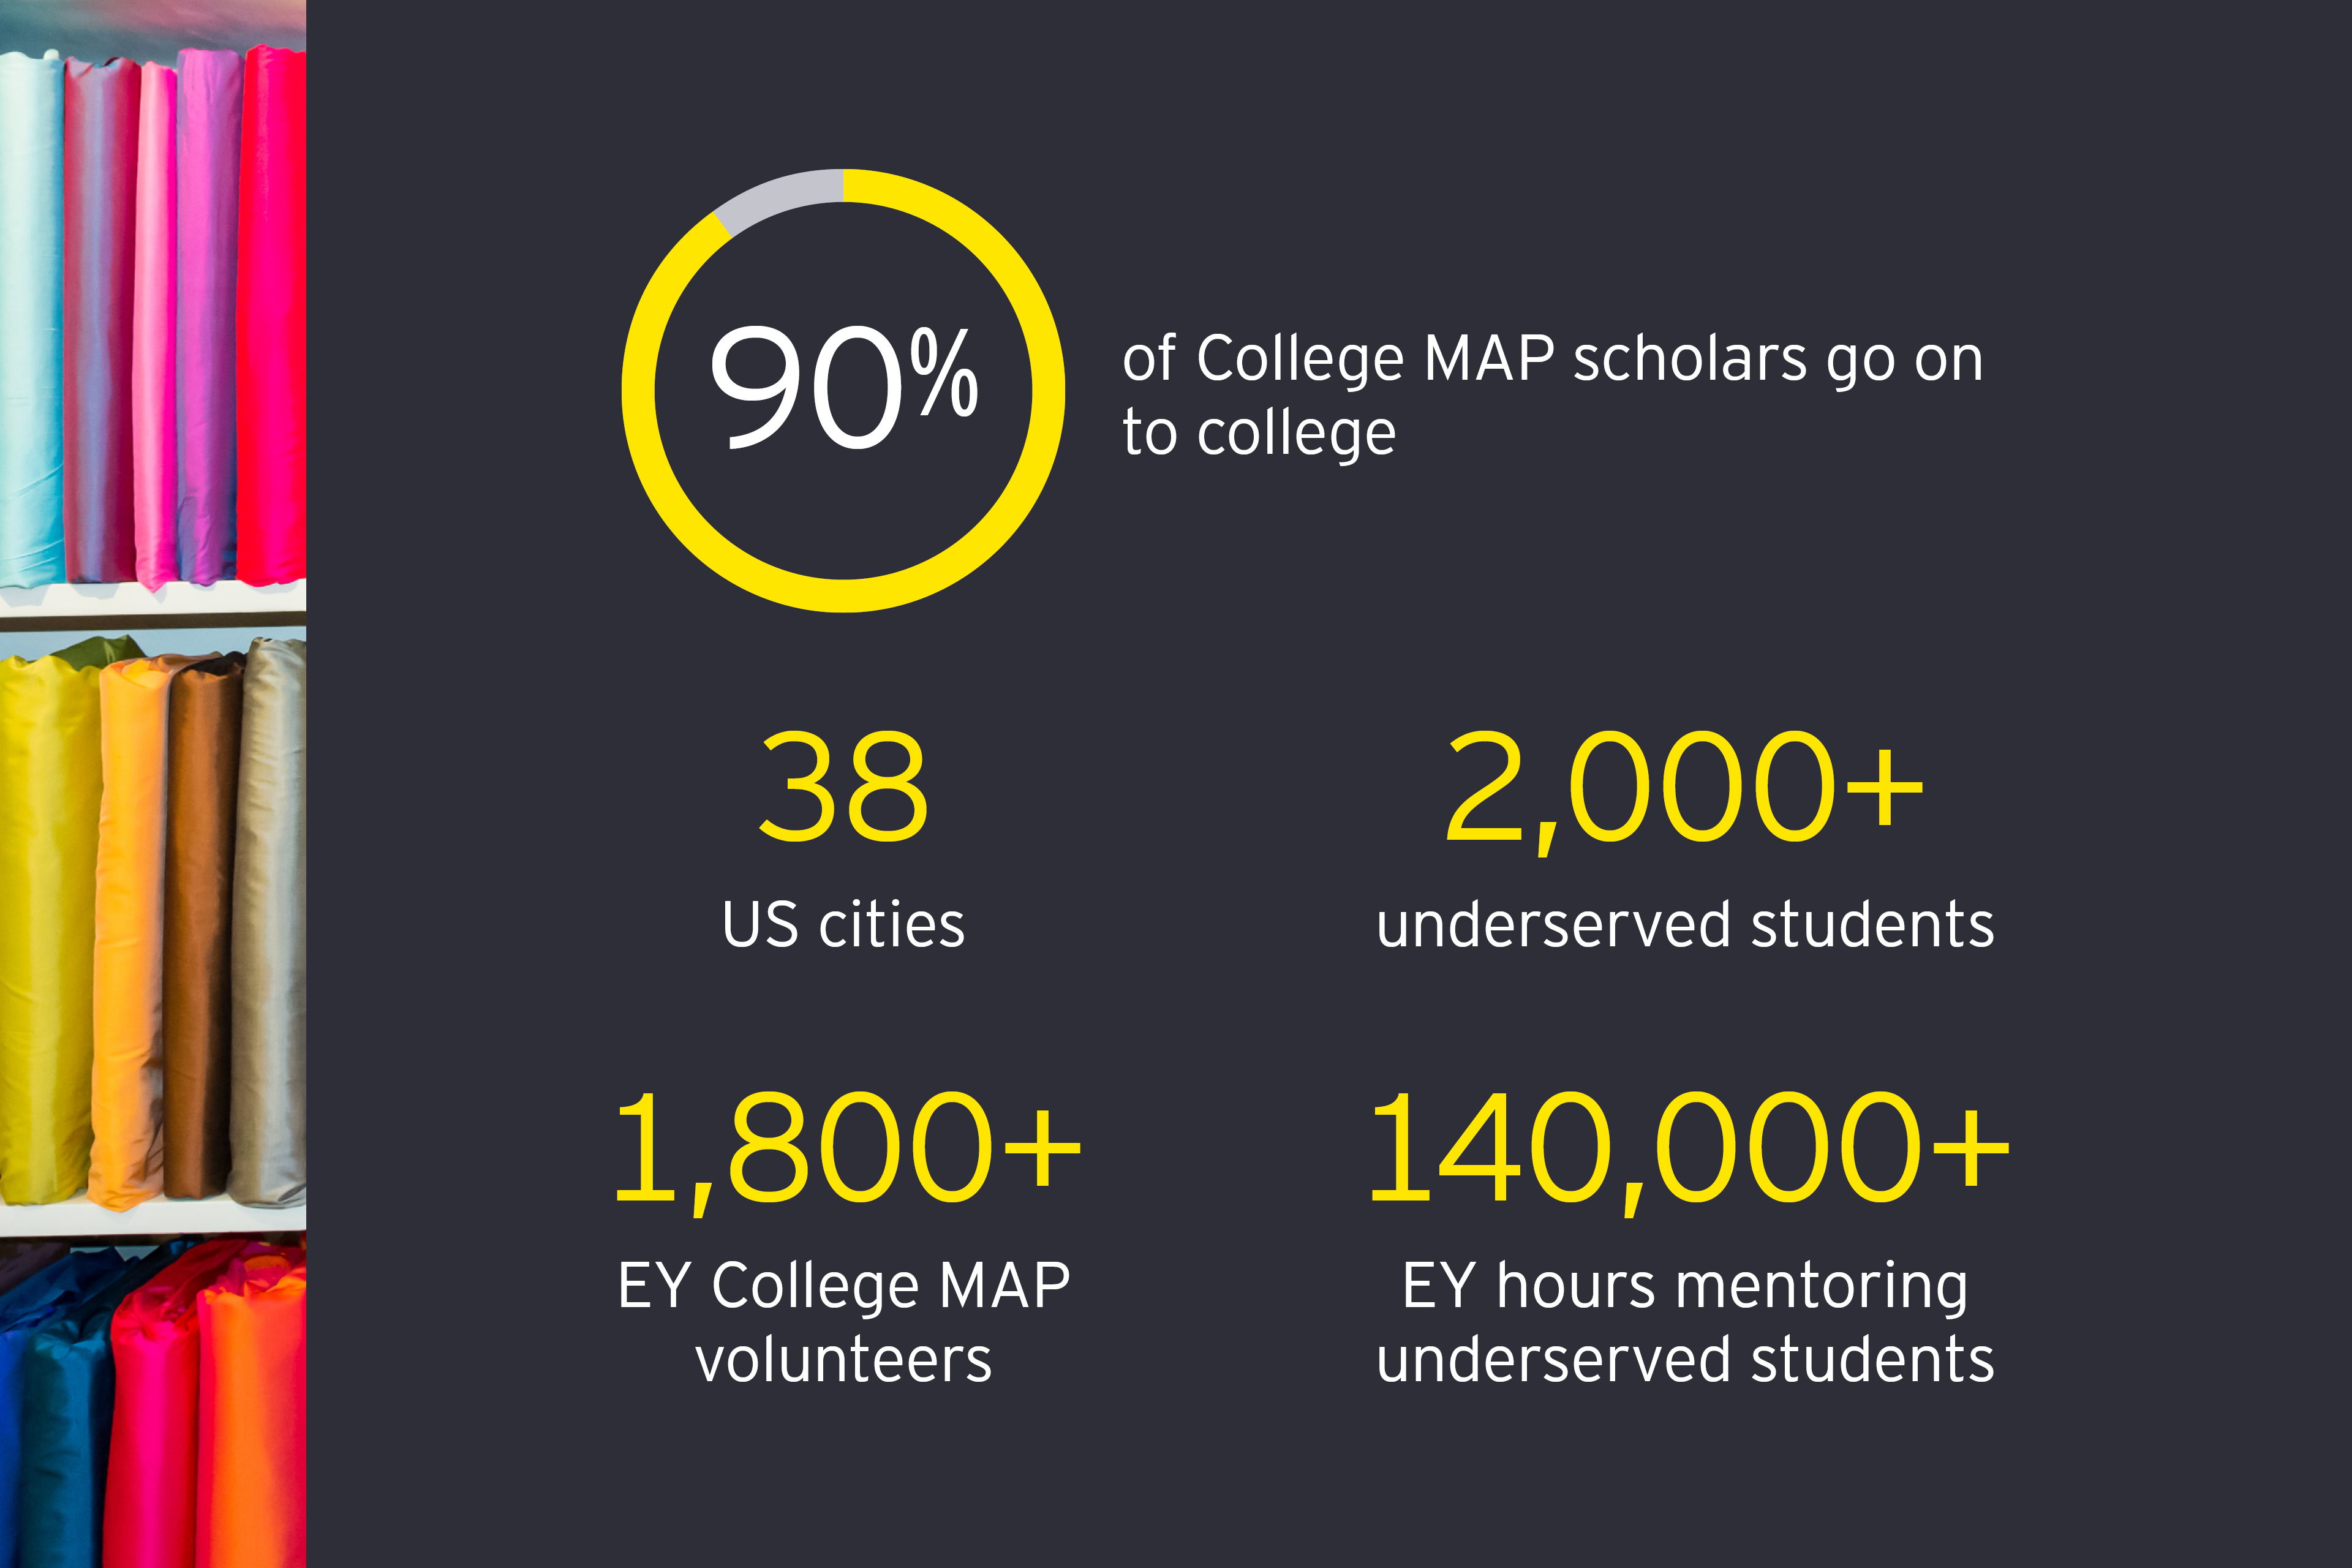 ey-90-of-college-map-scholars-go-on-to-college